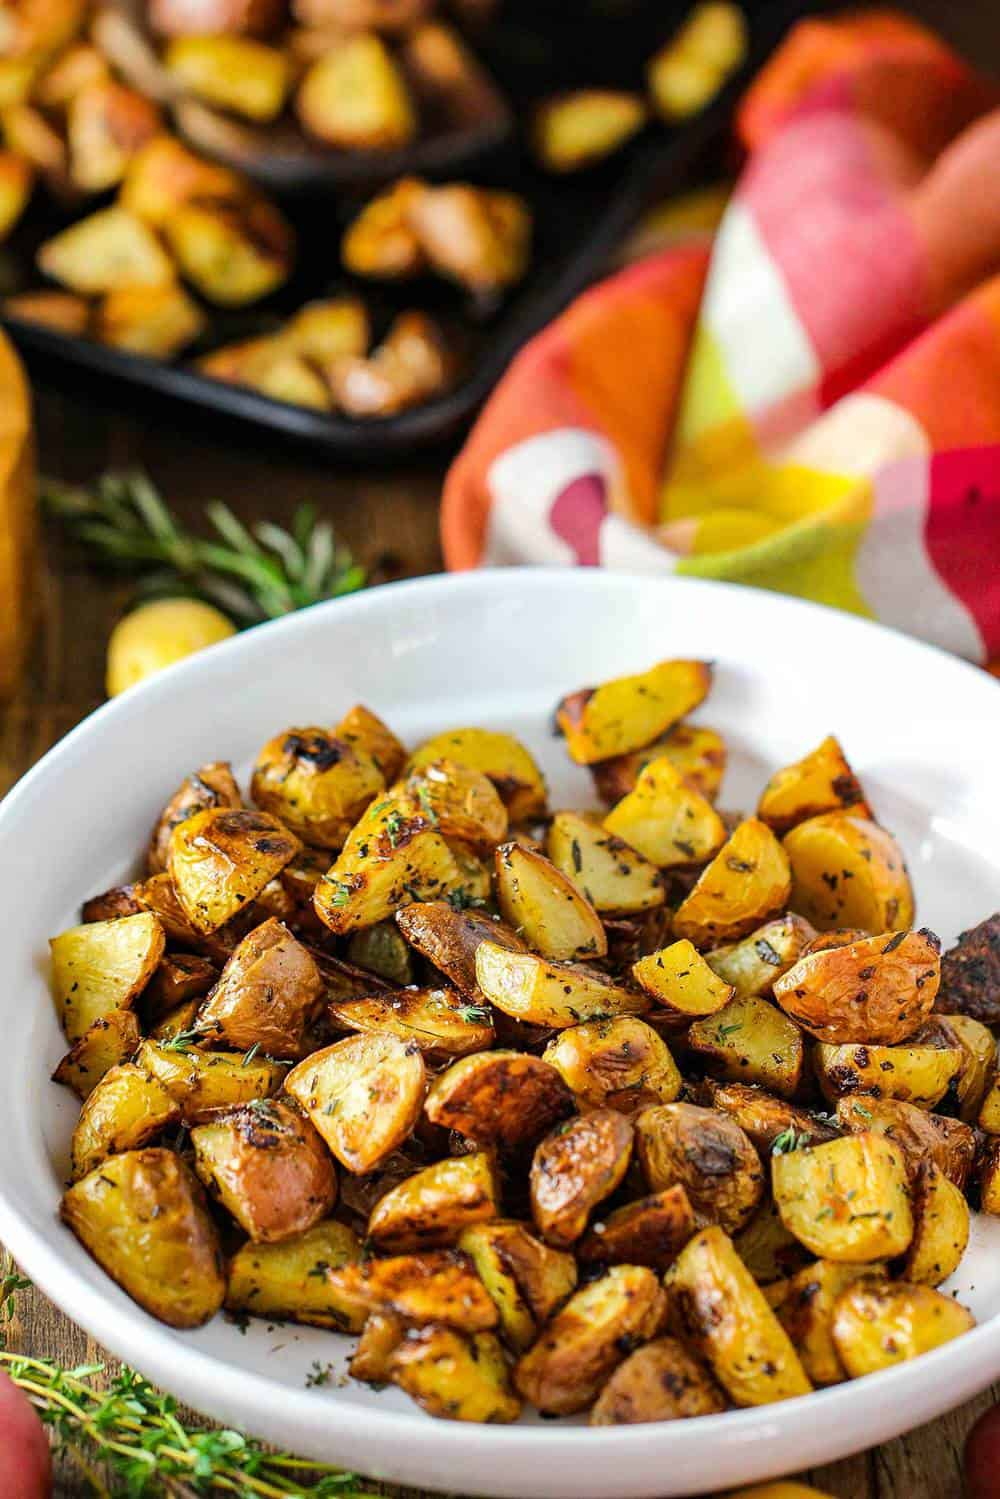 Roasted potatoes with balsamic and herbs in a white bowl with a colorful napkin next to it.